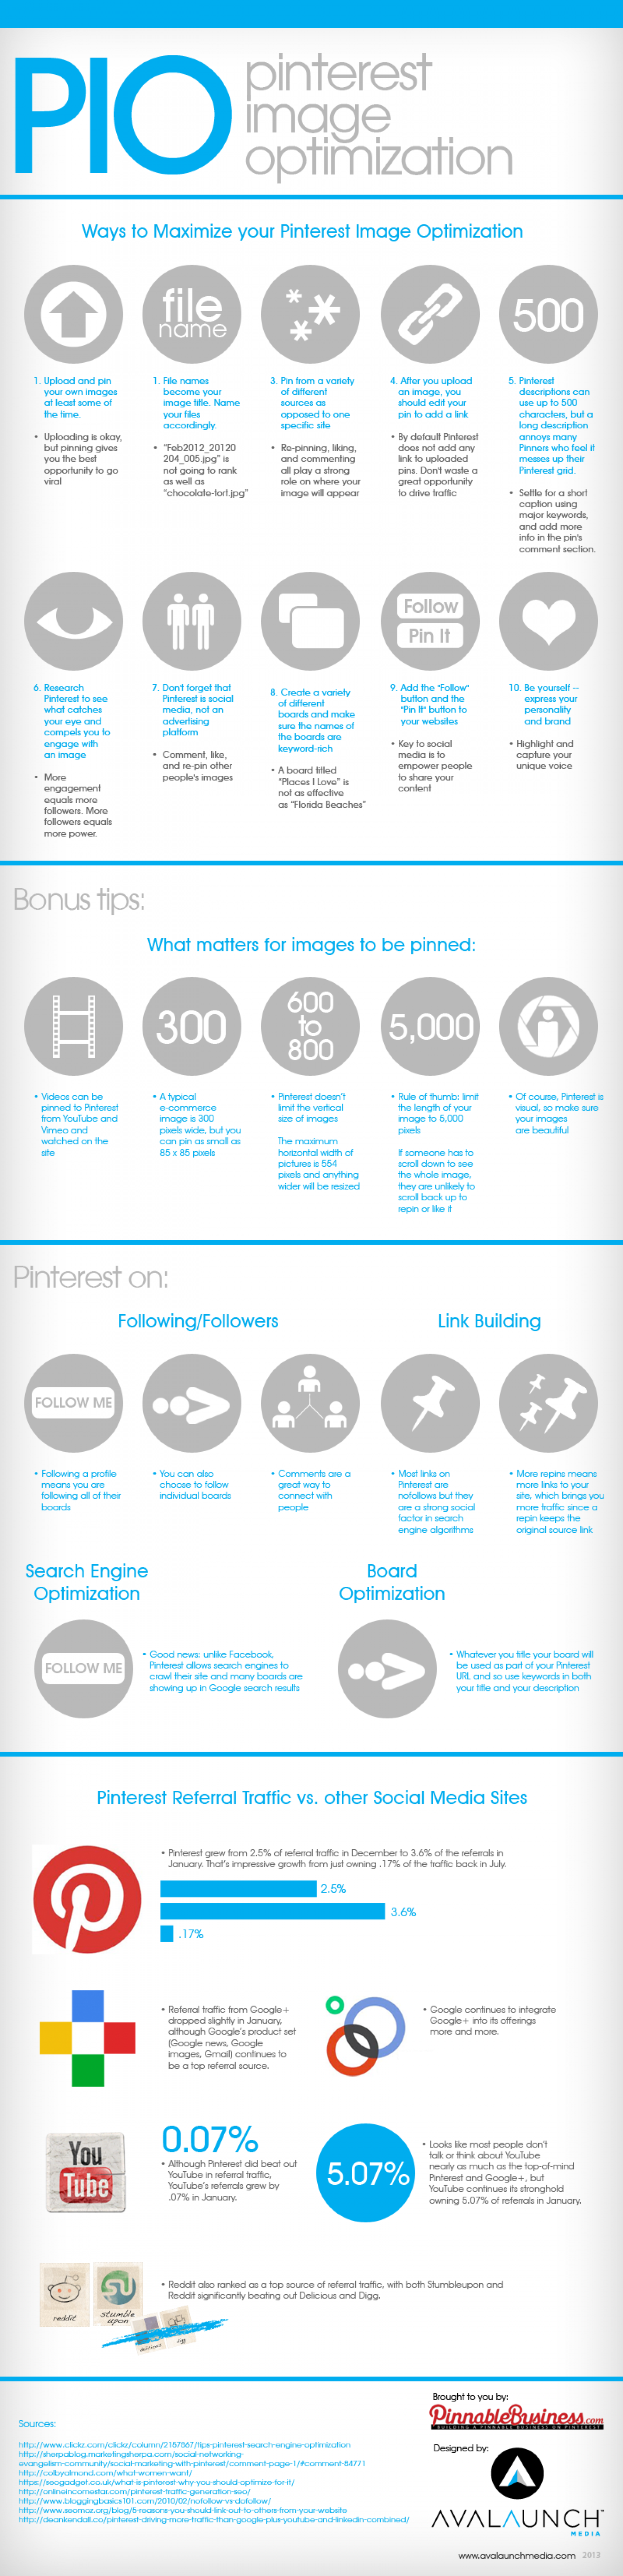 Pinterest Image Optimization Infographic